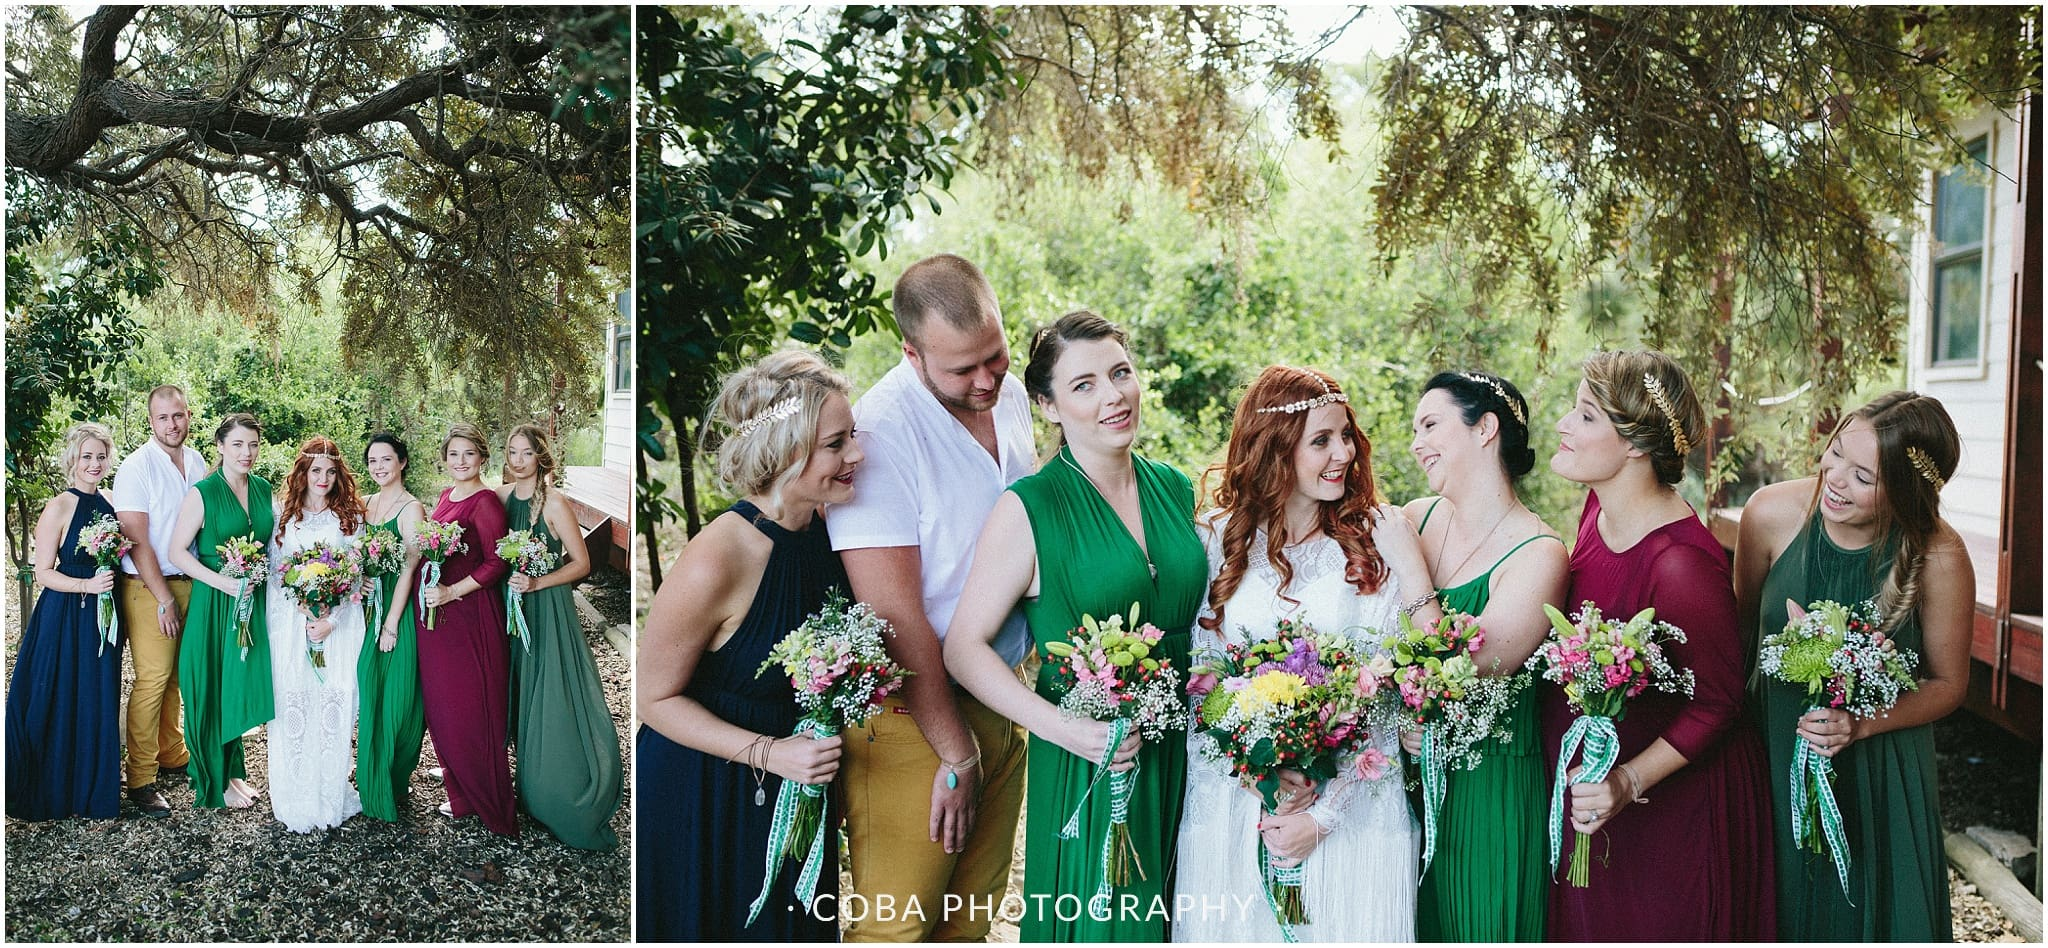 Conrad & Mareli - boho beach wedding habonim - coba photography (41)